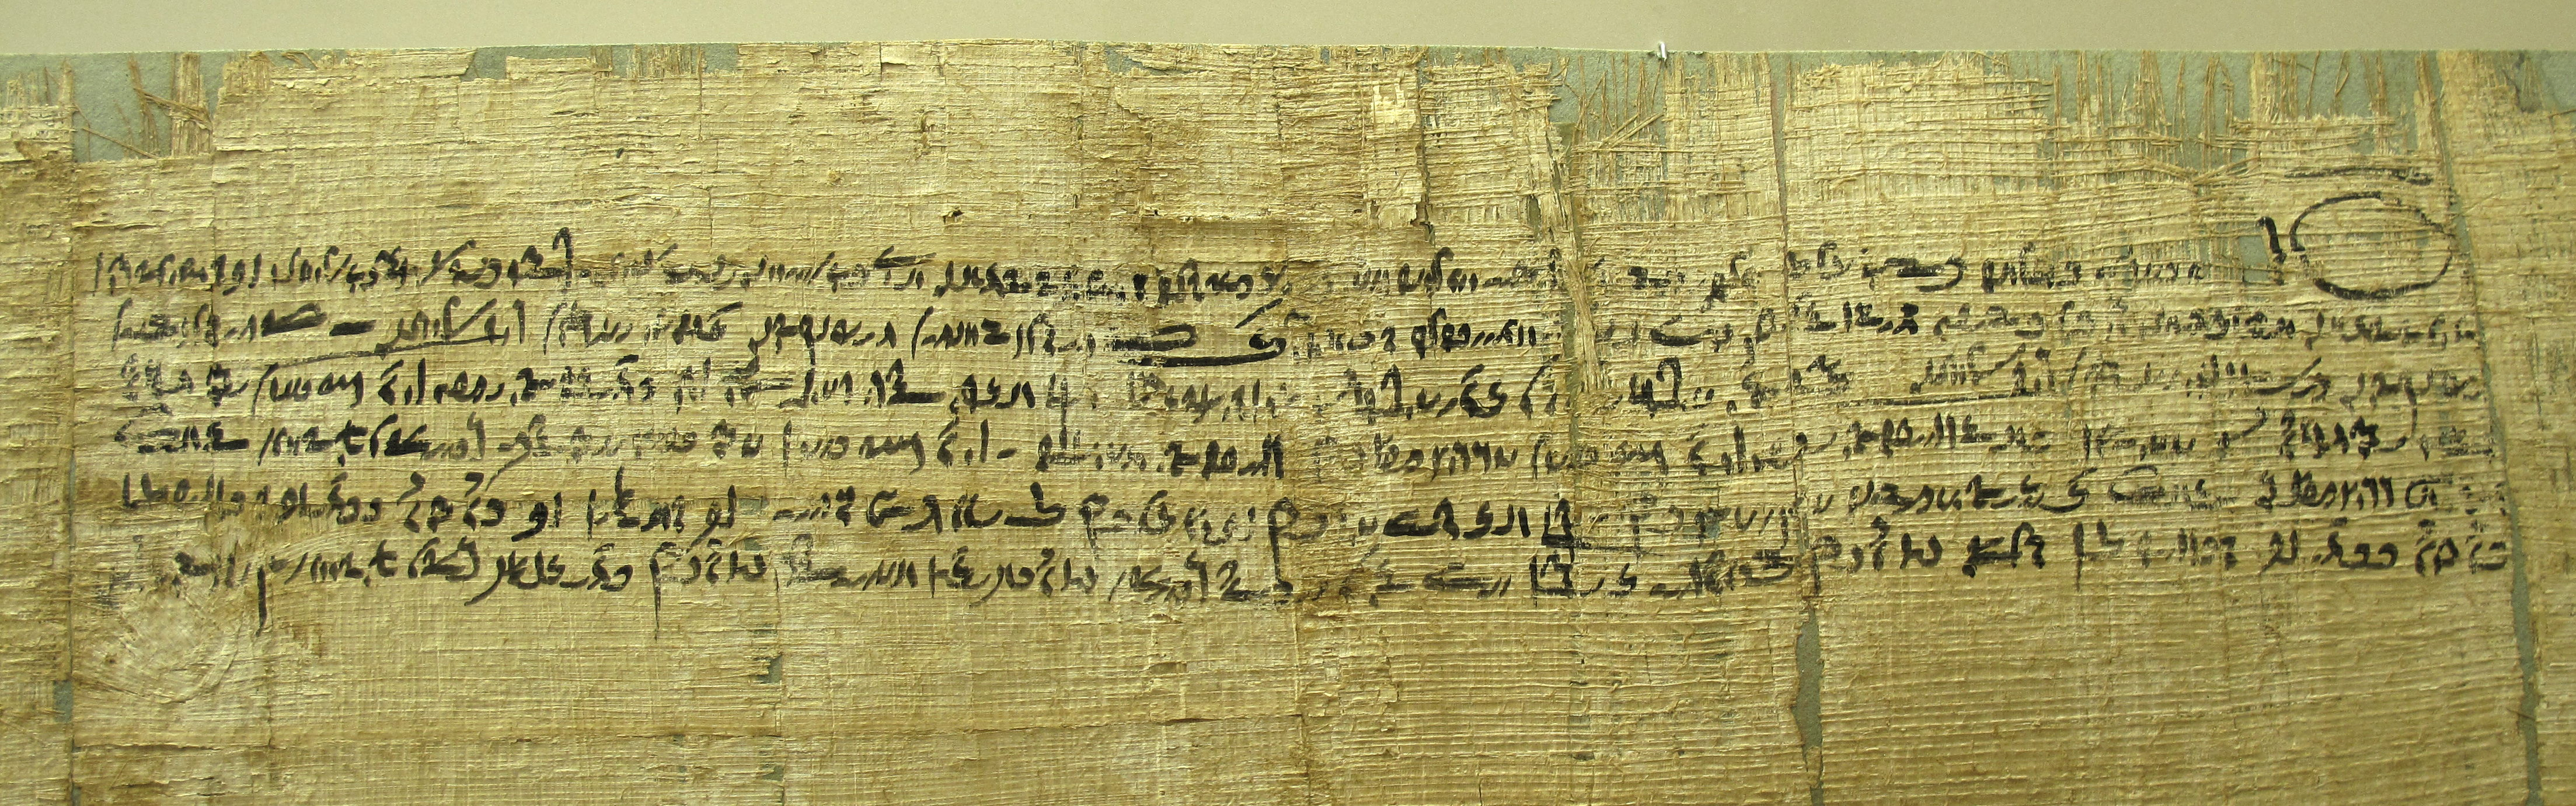 Image of Demotic Written on Papyrus